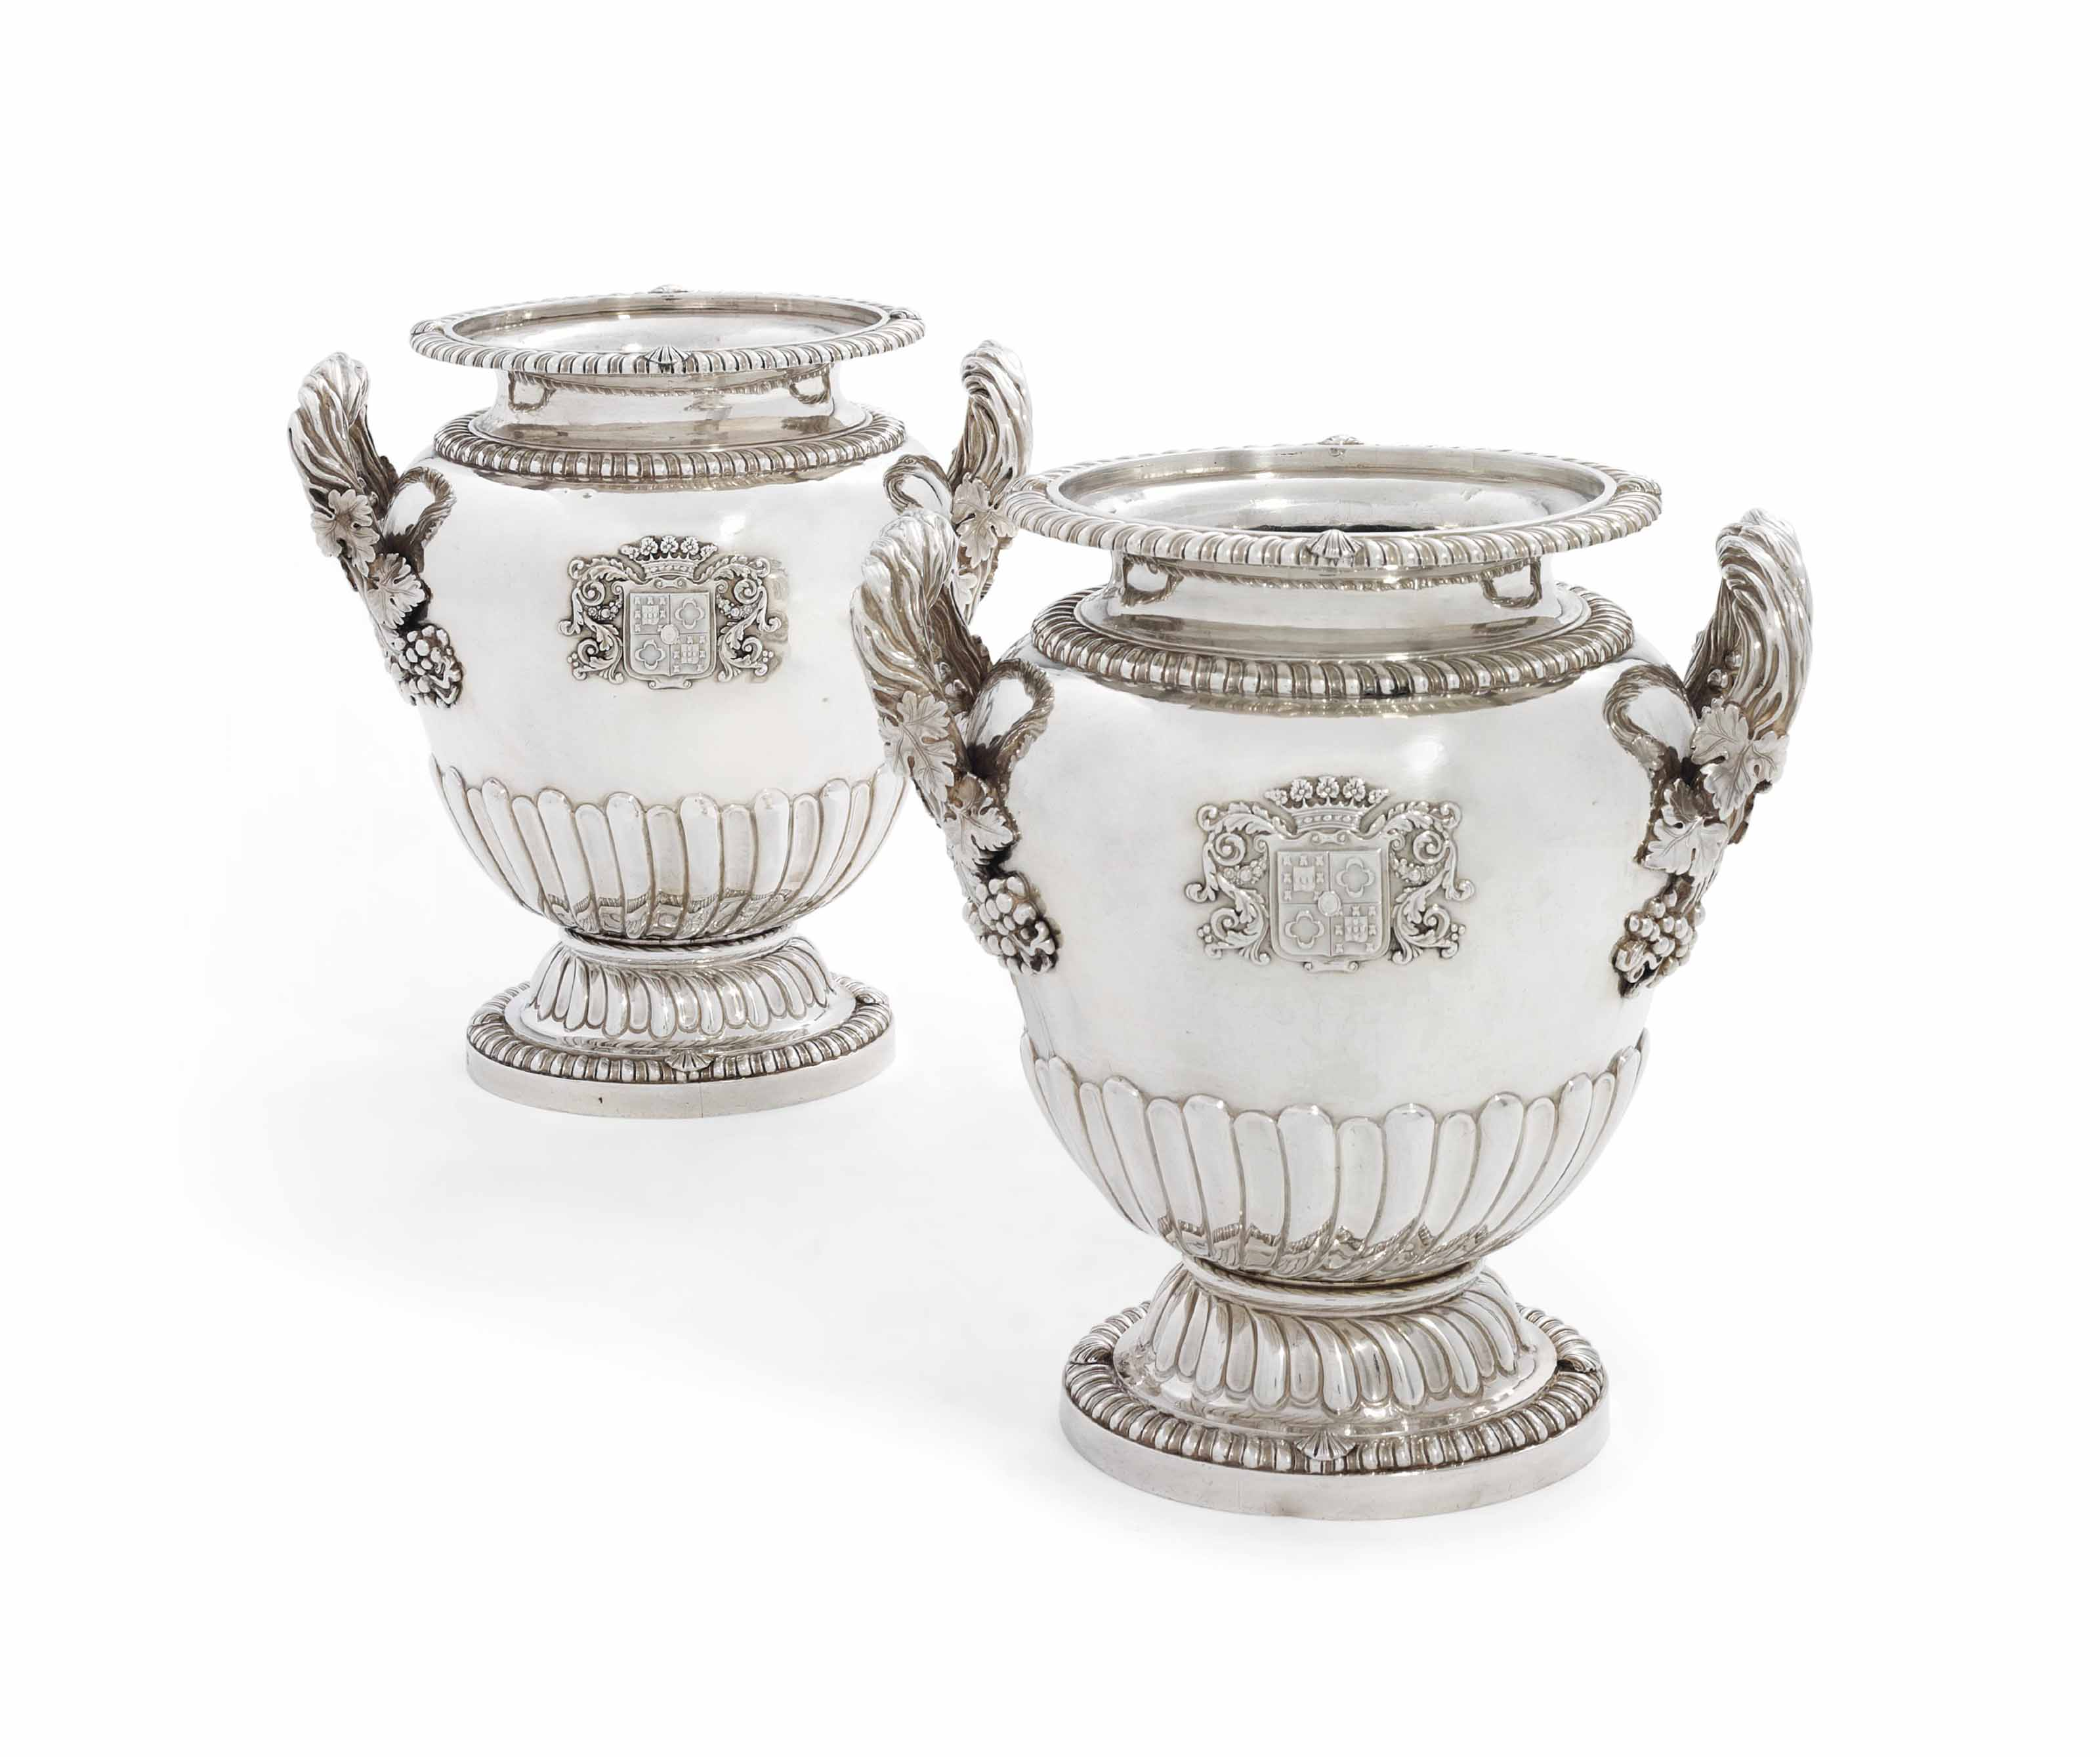 A PAIR OF FRENCH SILVER WINE-COOLERS